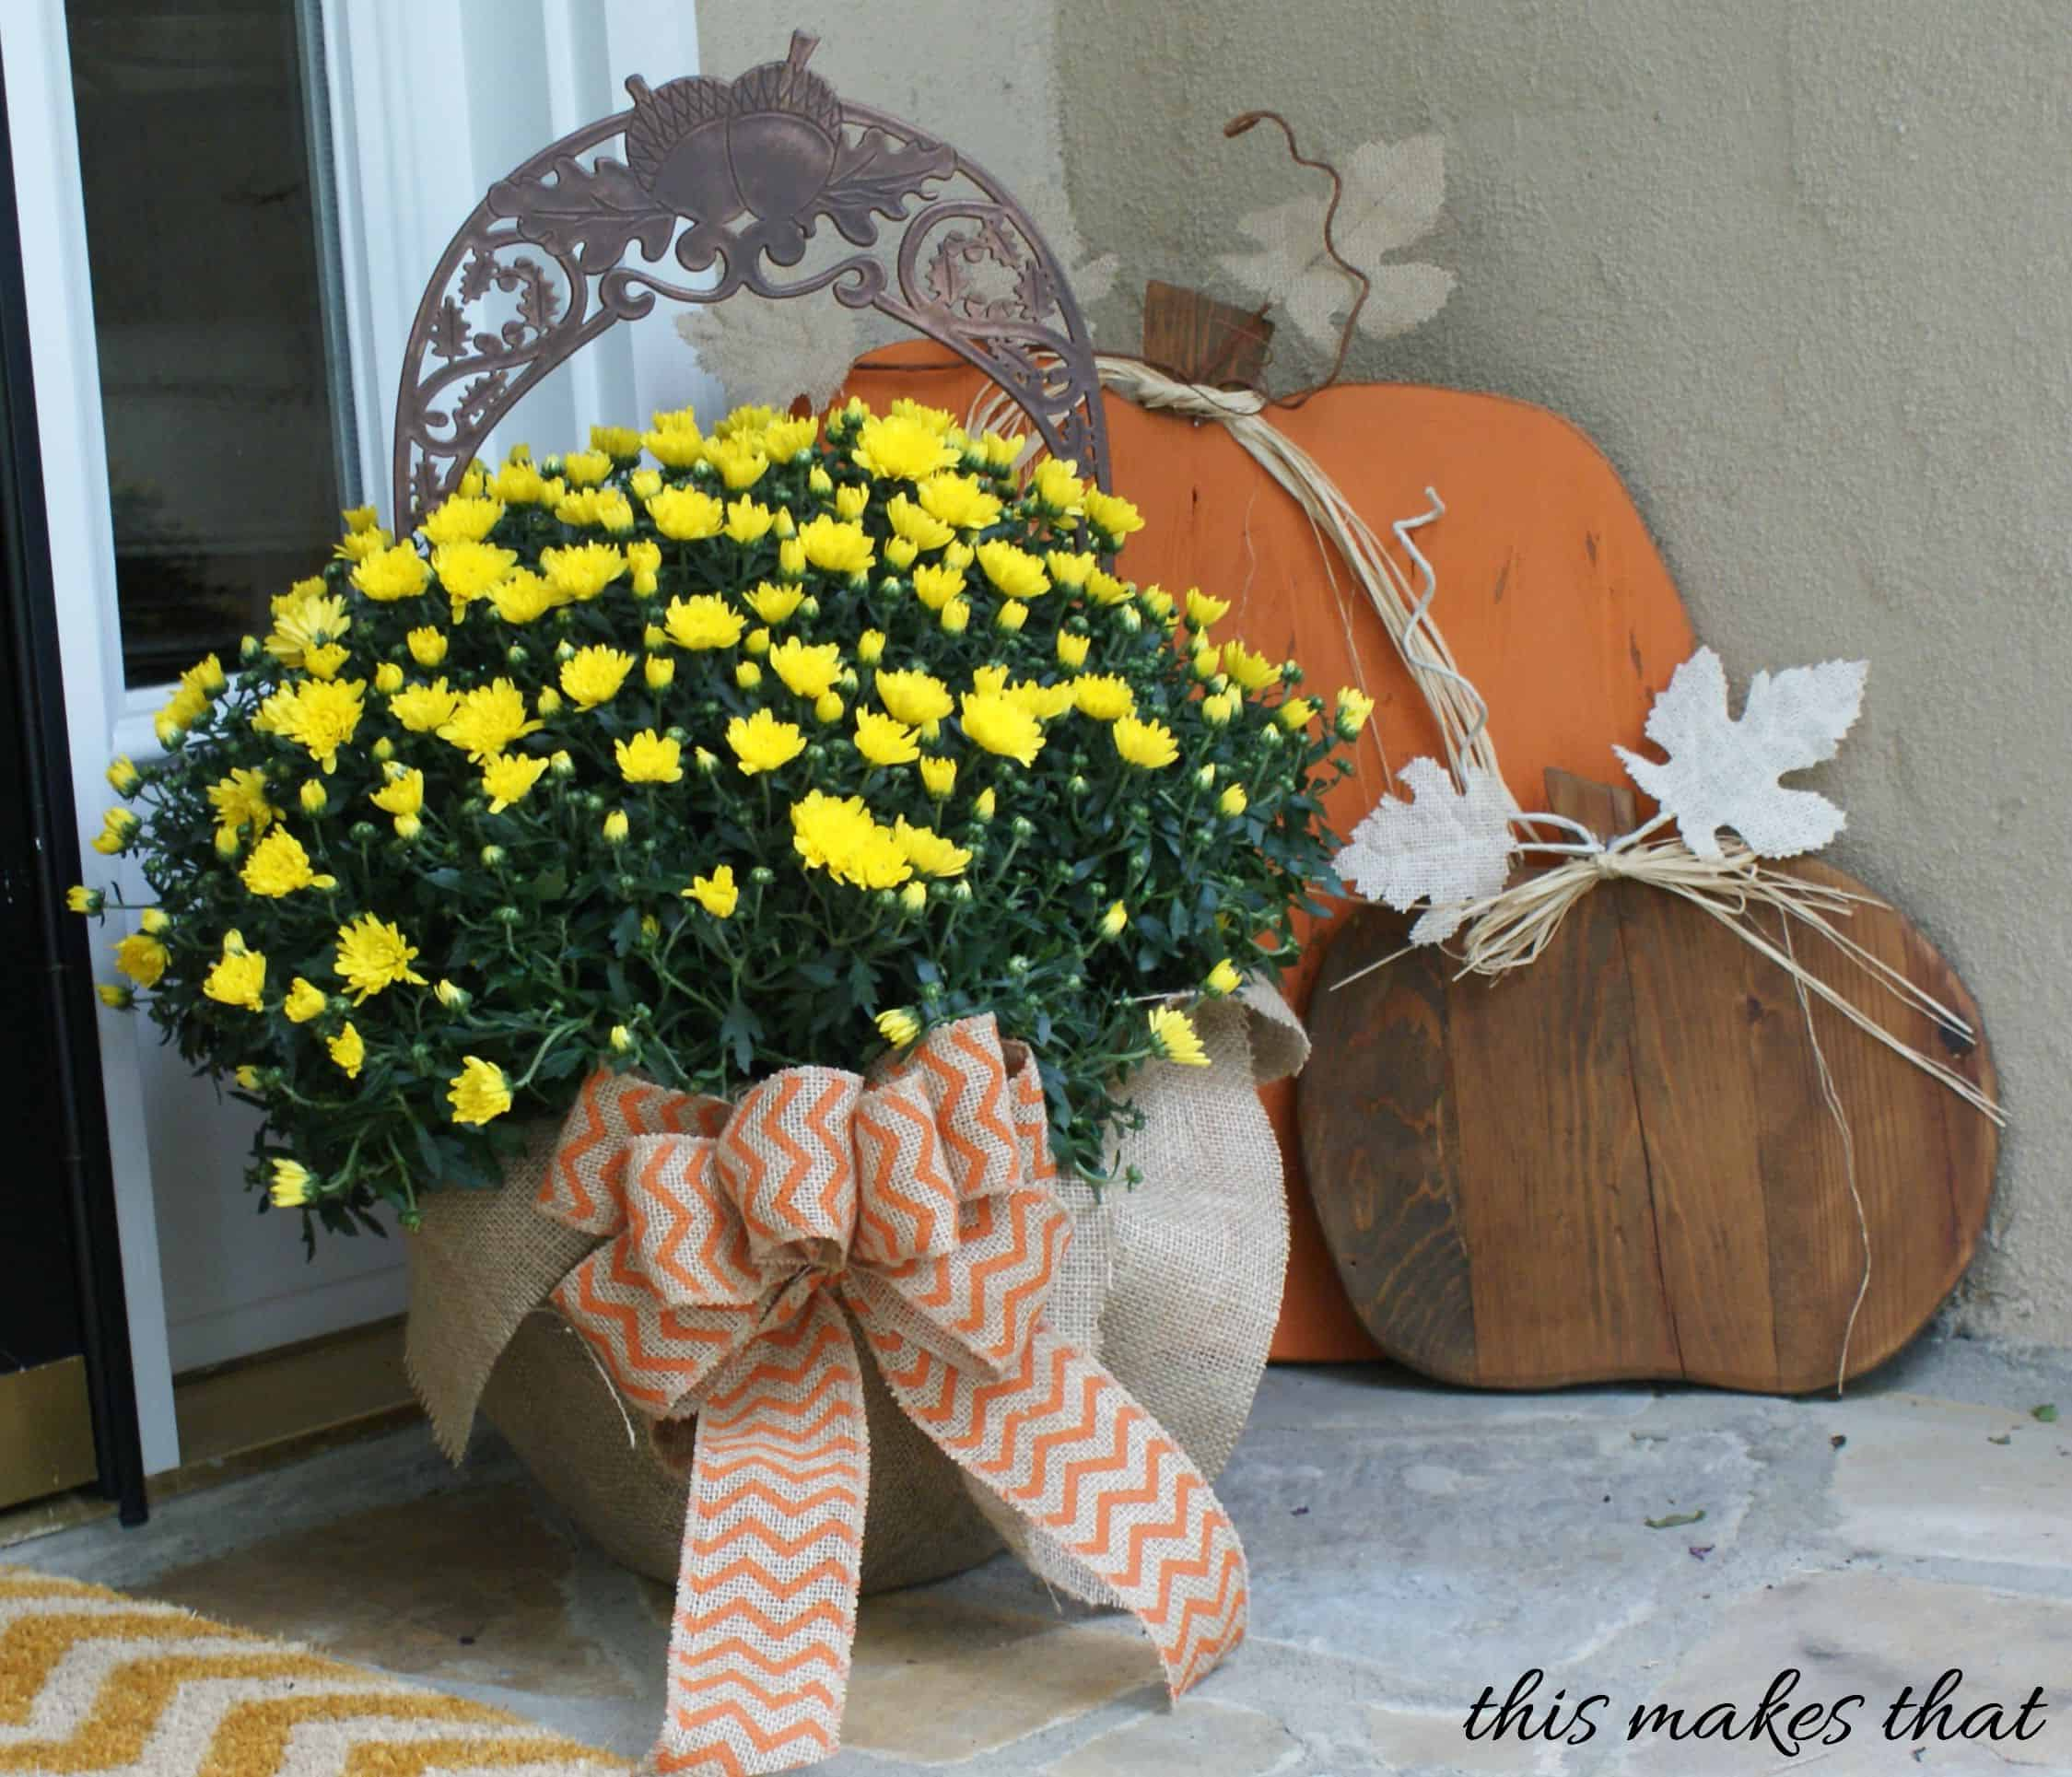 Burlap Wrapped Pots Are So Simple to Create for Simple Fall Decor